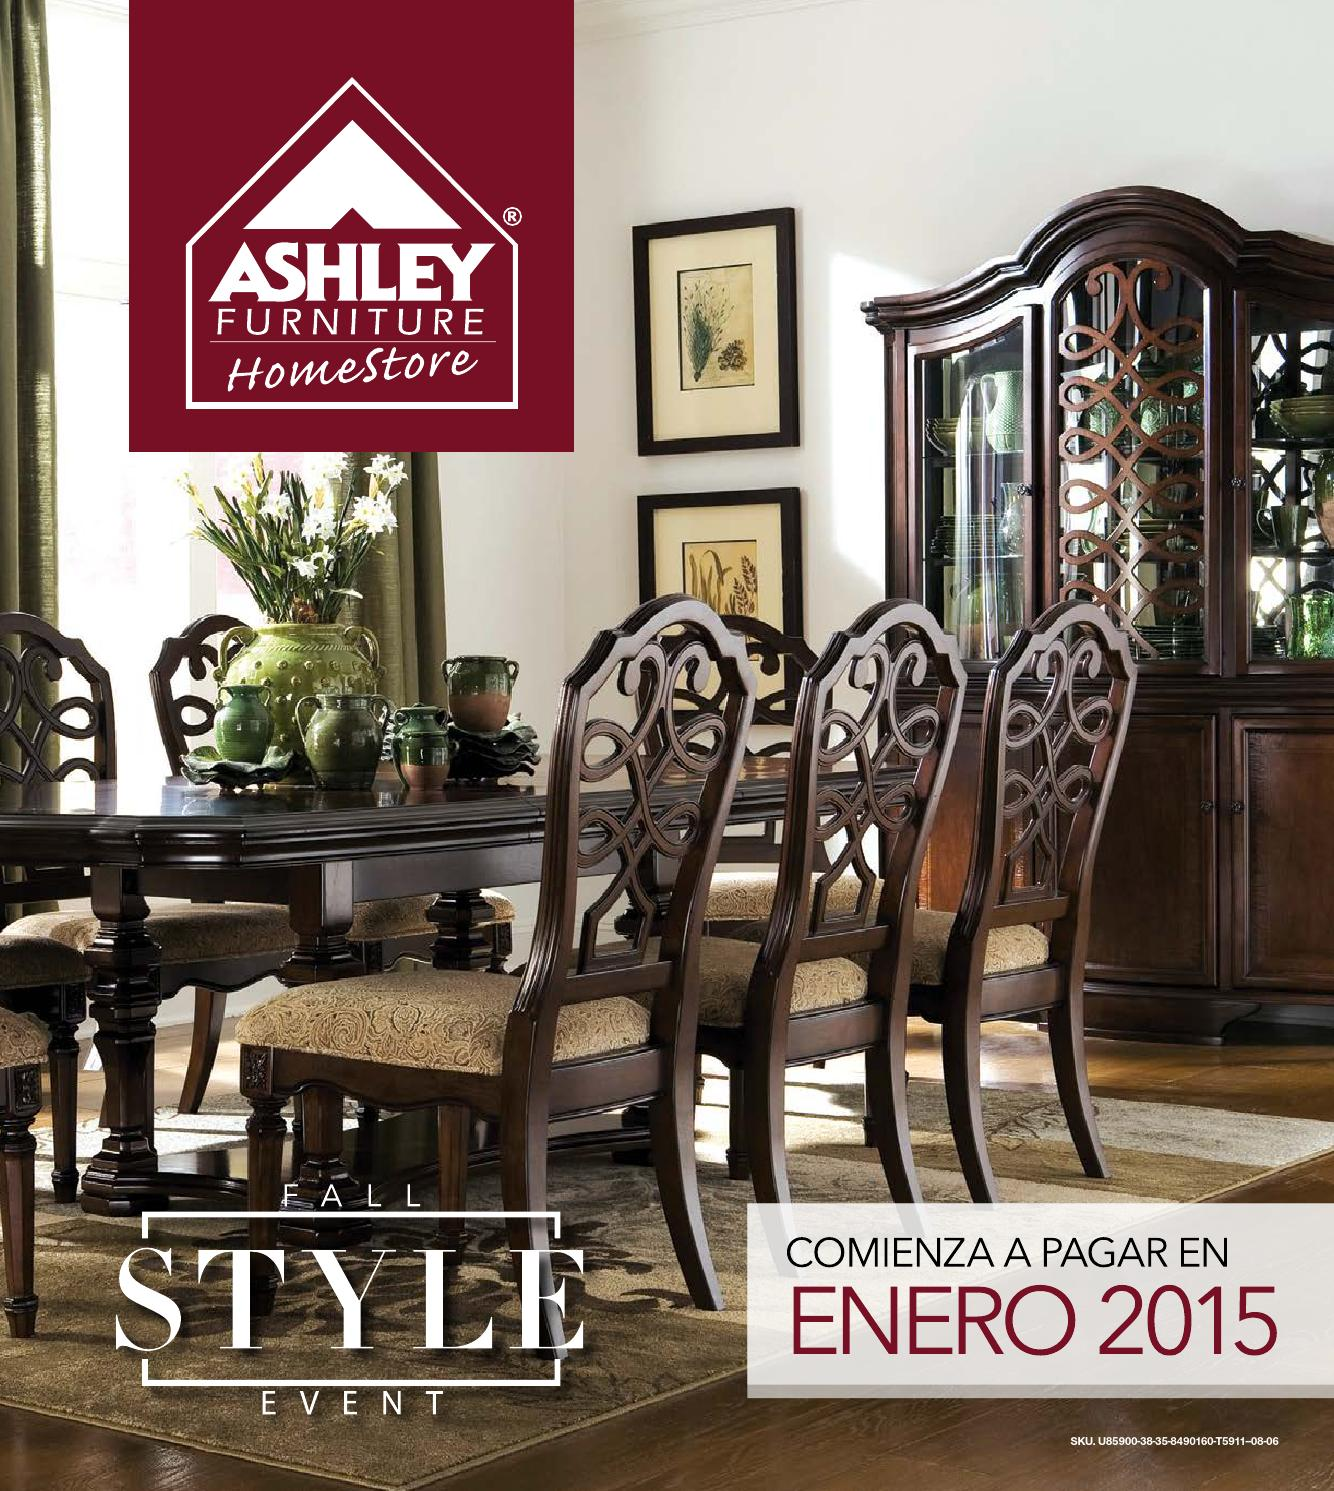 Homestore Inc: Fall Style Event By Ashley Furniture HomeStore RD